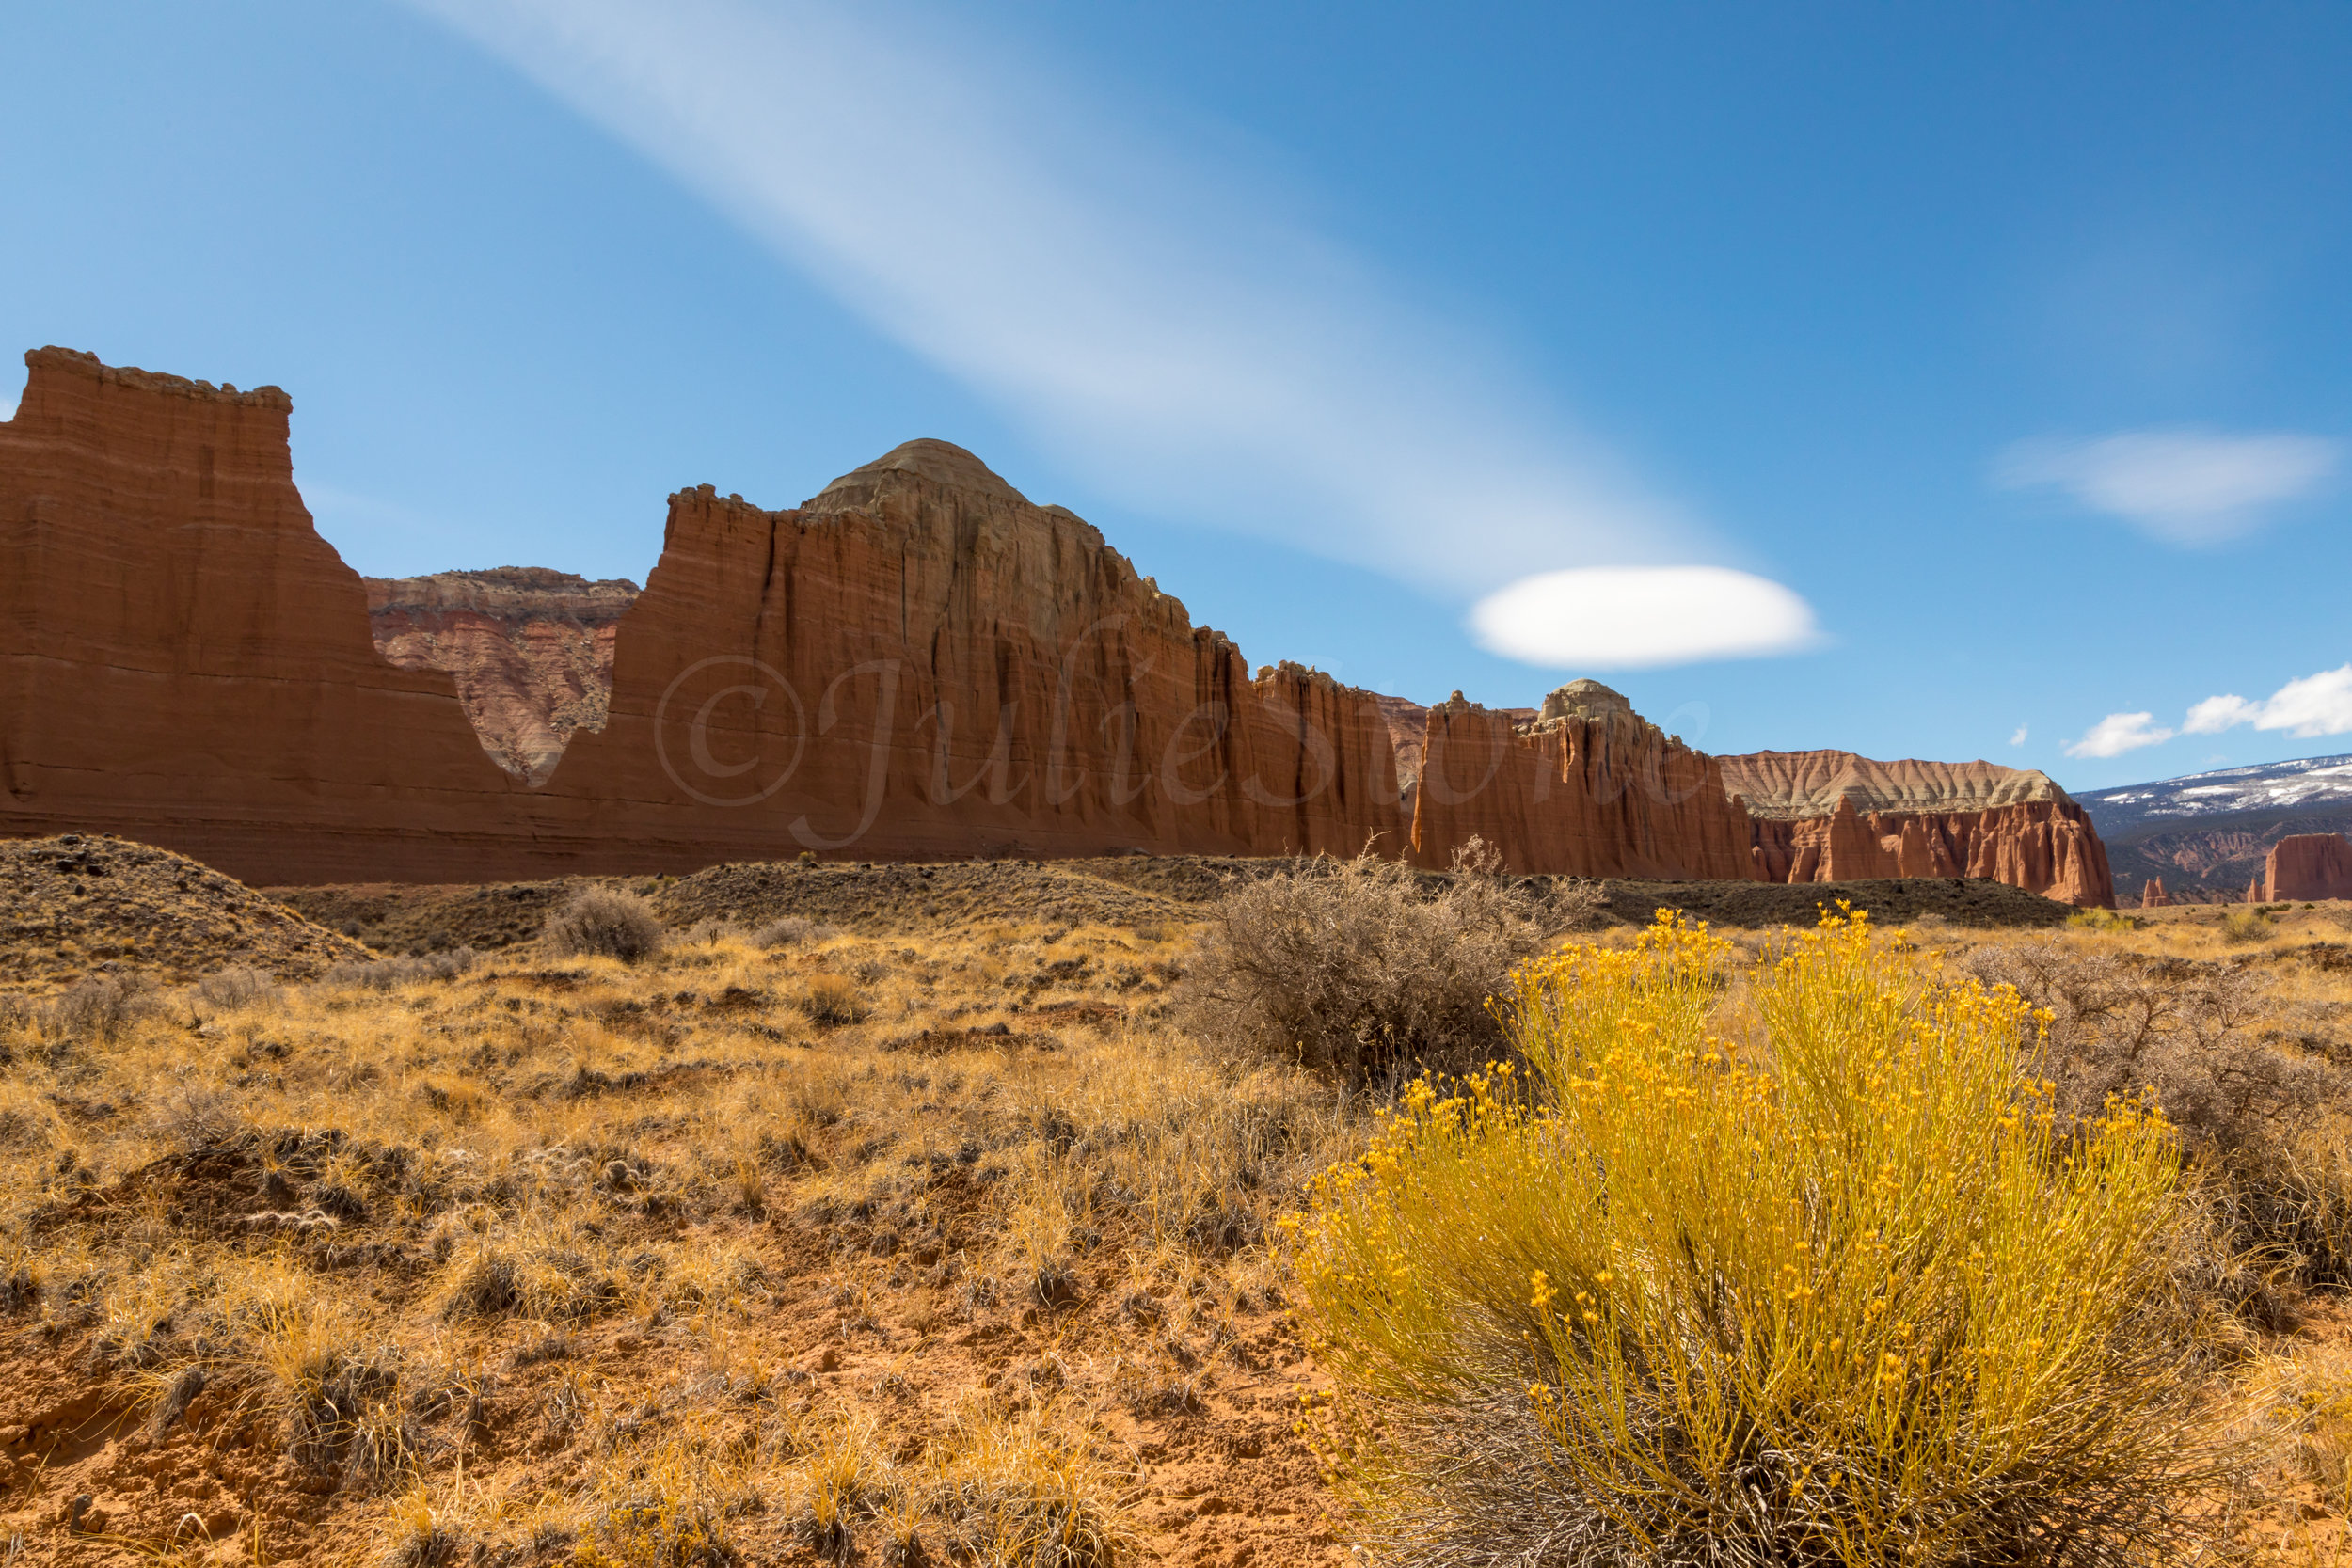 Capitol Reef National Park, Image # 1842